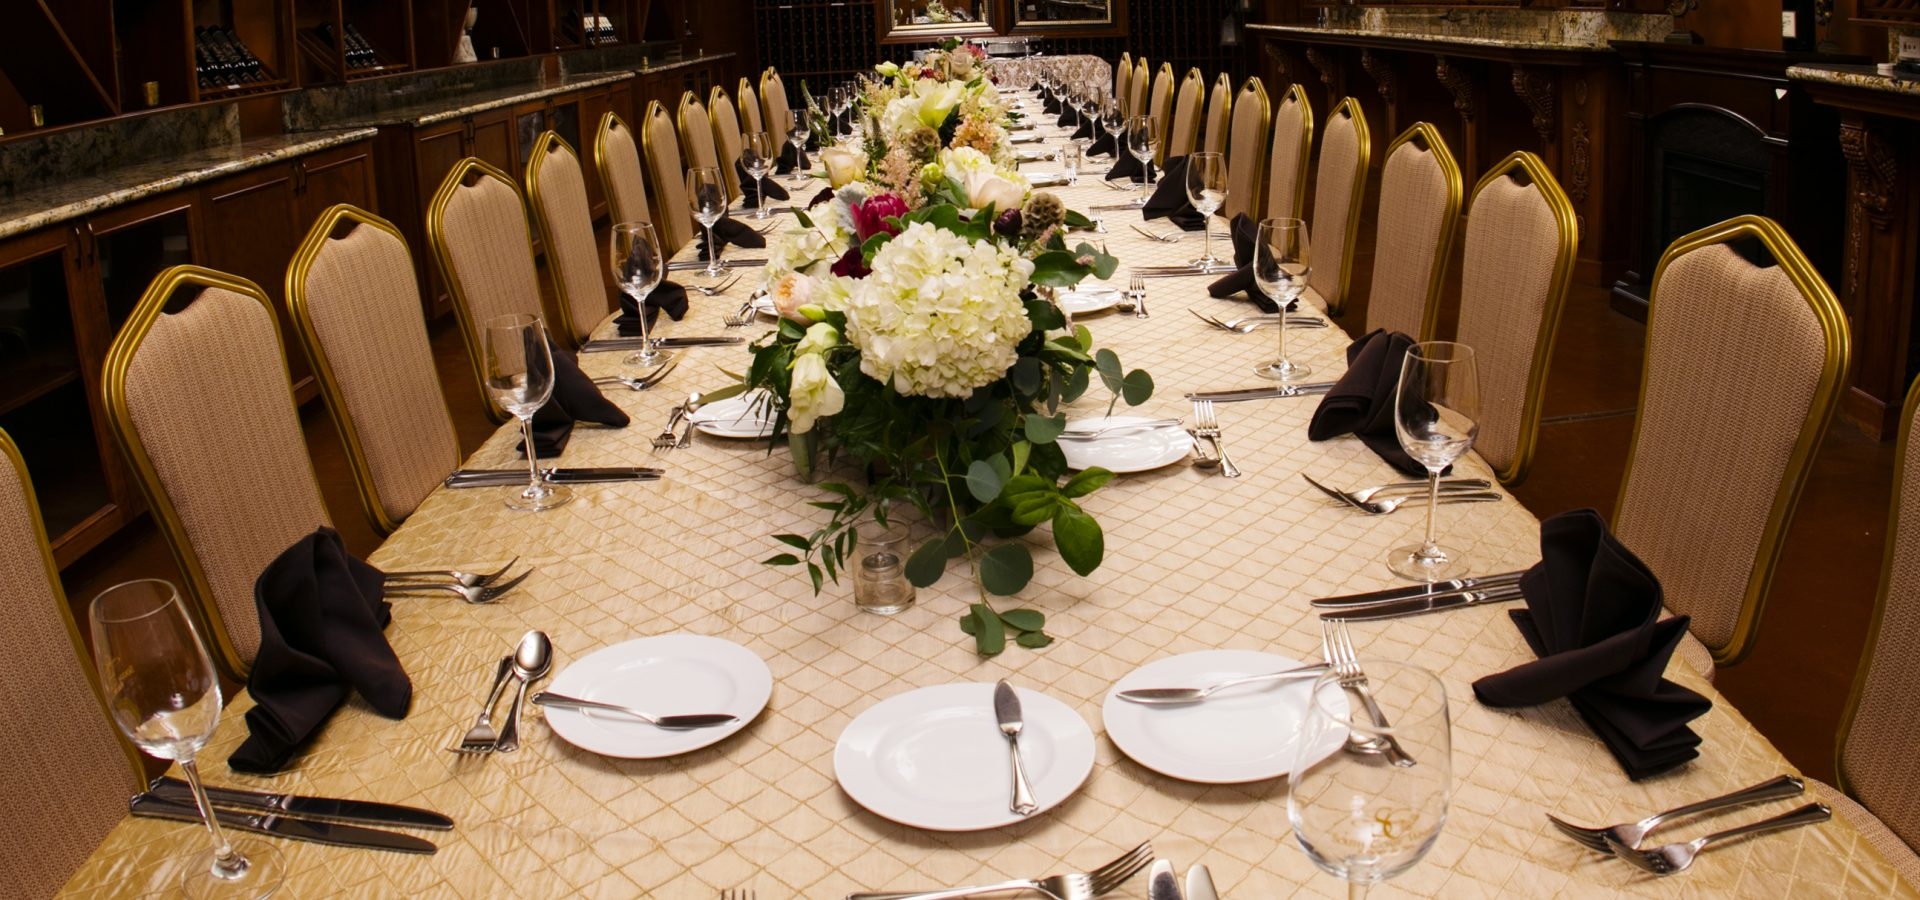 wedding banquet available at South Coast Winery Resort in Temecula CA